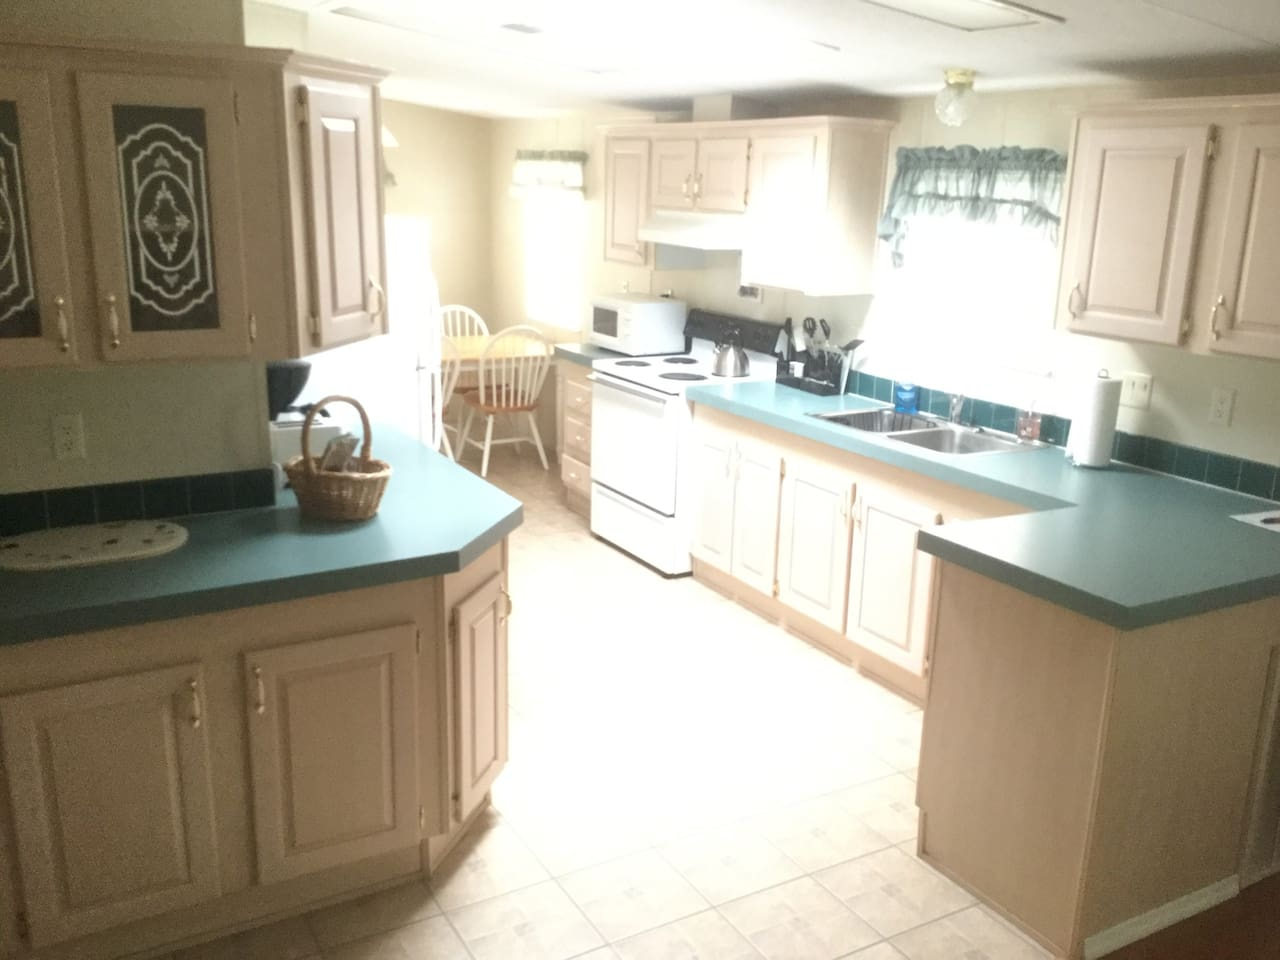 Large open kitchen with dish set, refrigerator, electric stove, and microwave